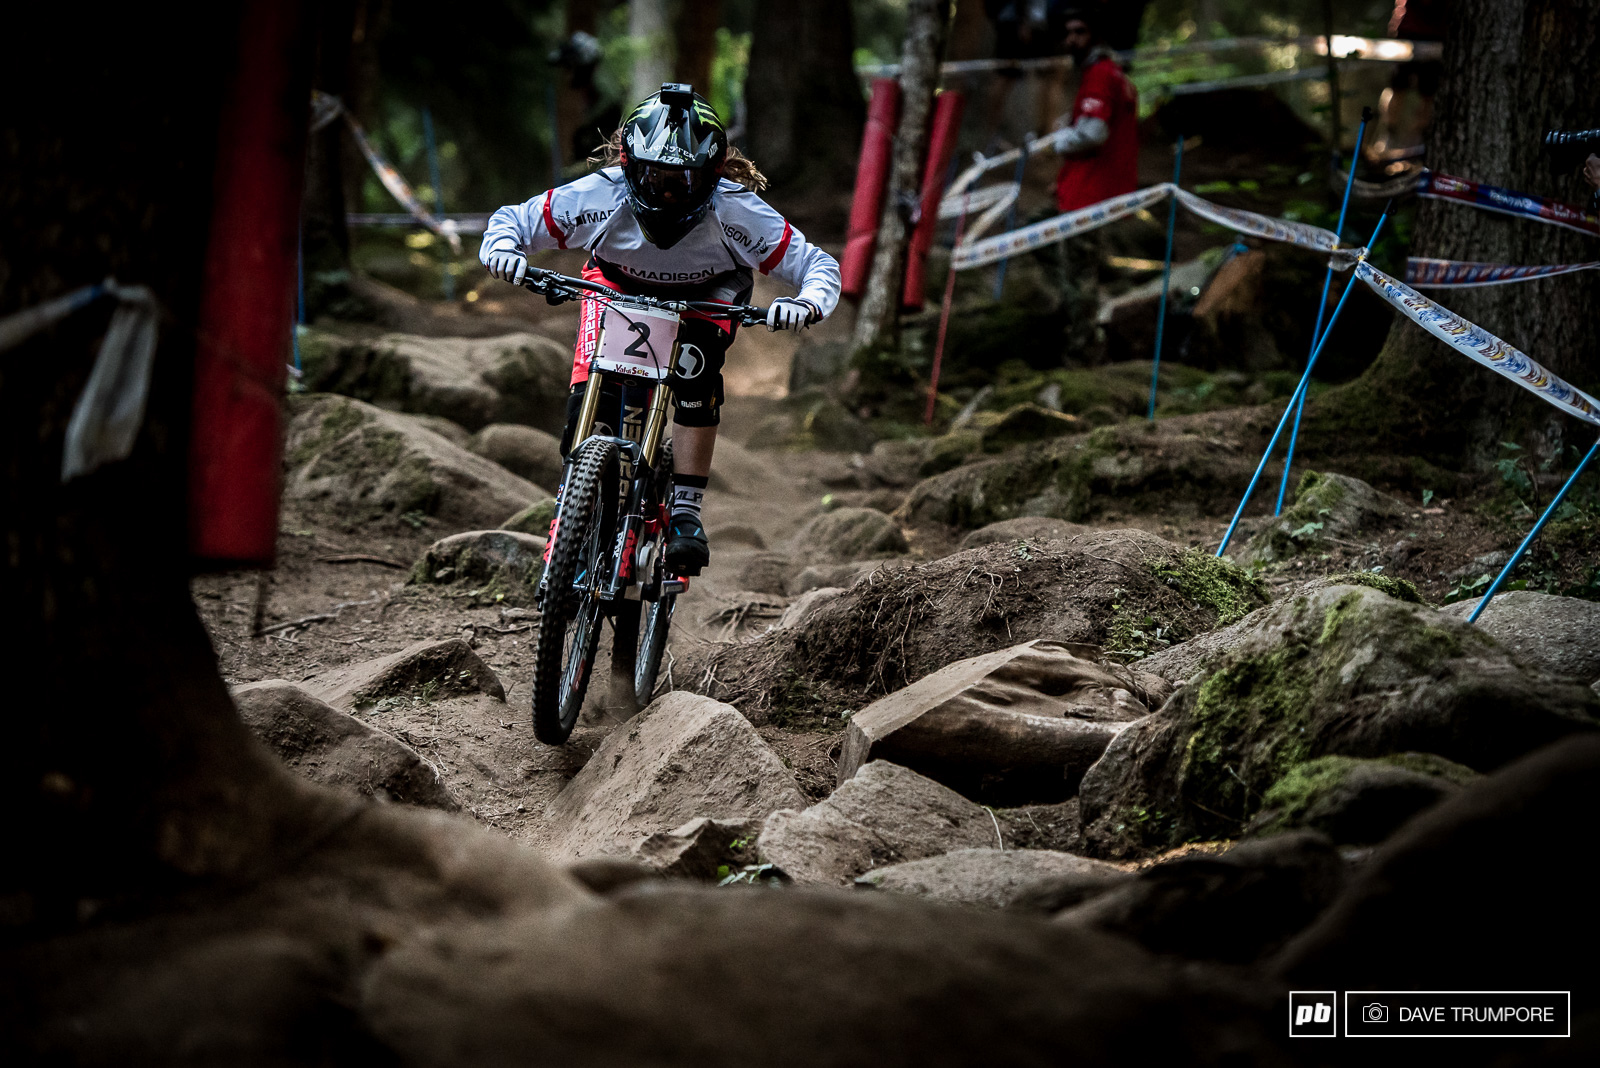 Healing vibes for Manon Carpenter as well as a plethora of other riders who went down hard today.